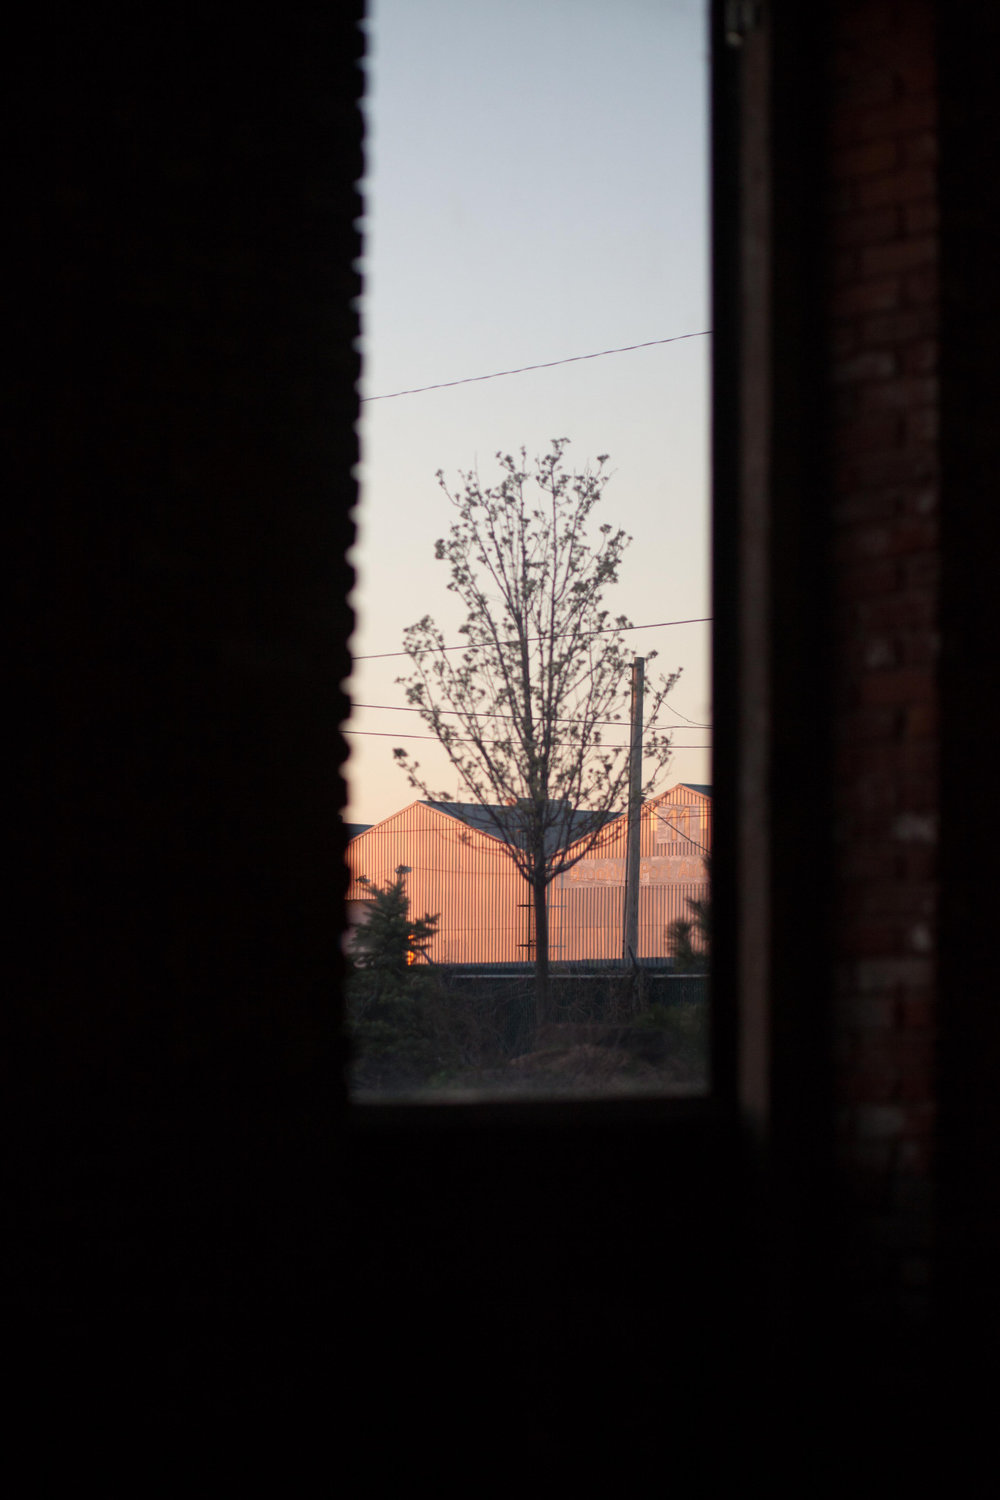 Through the window. Red Hook - April 2014.